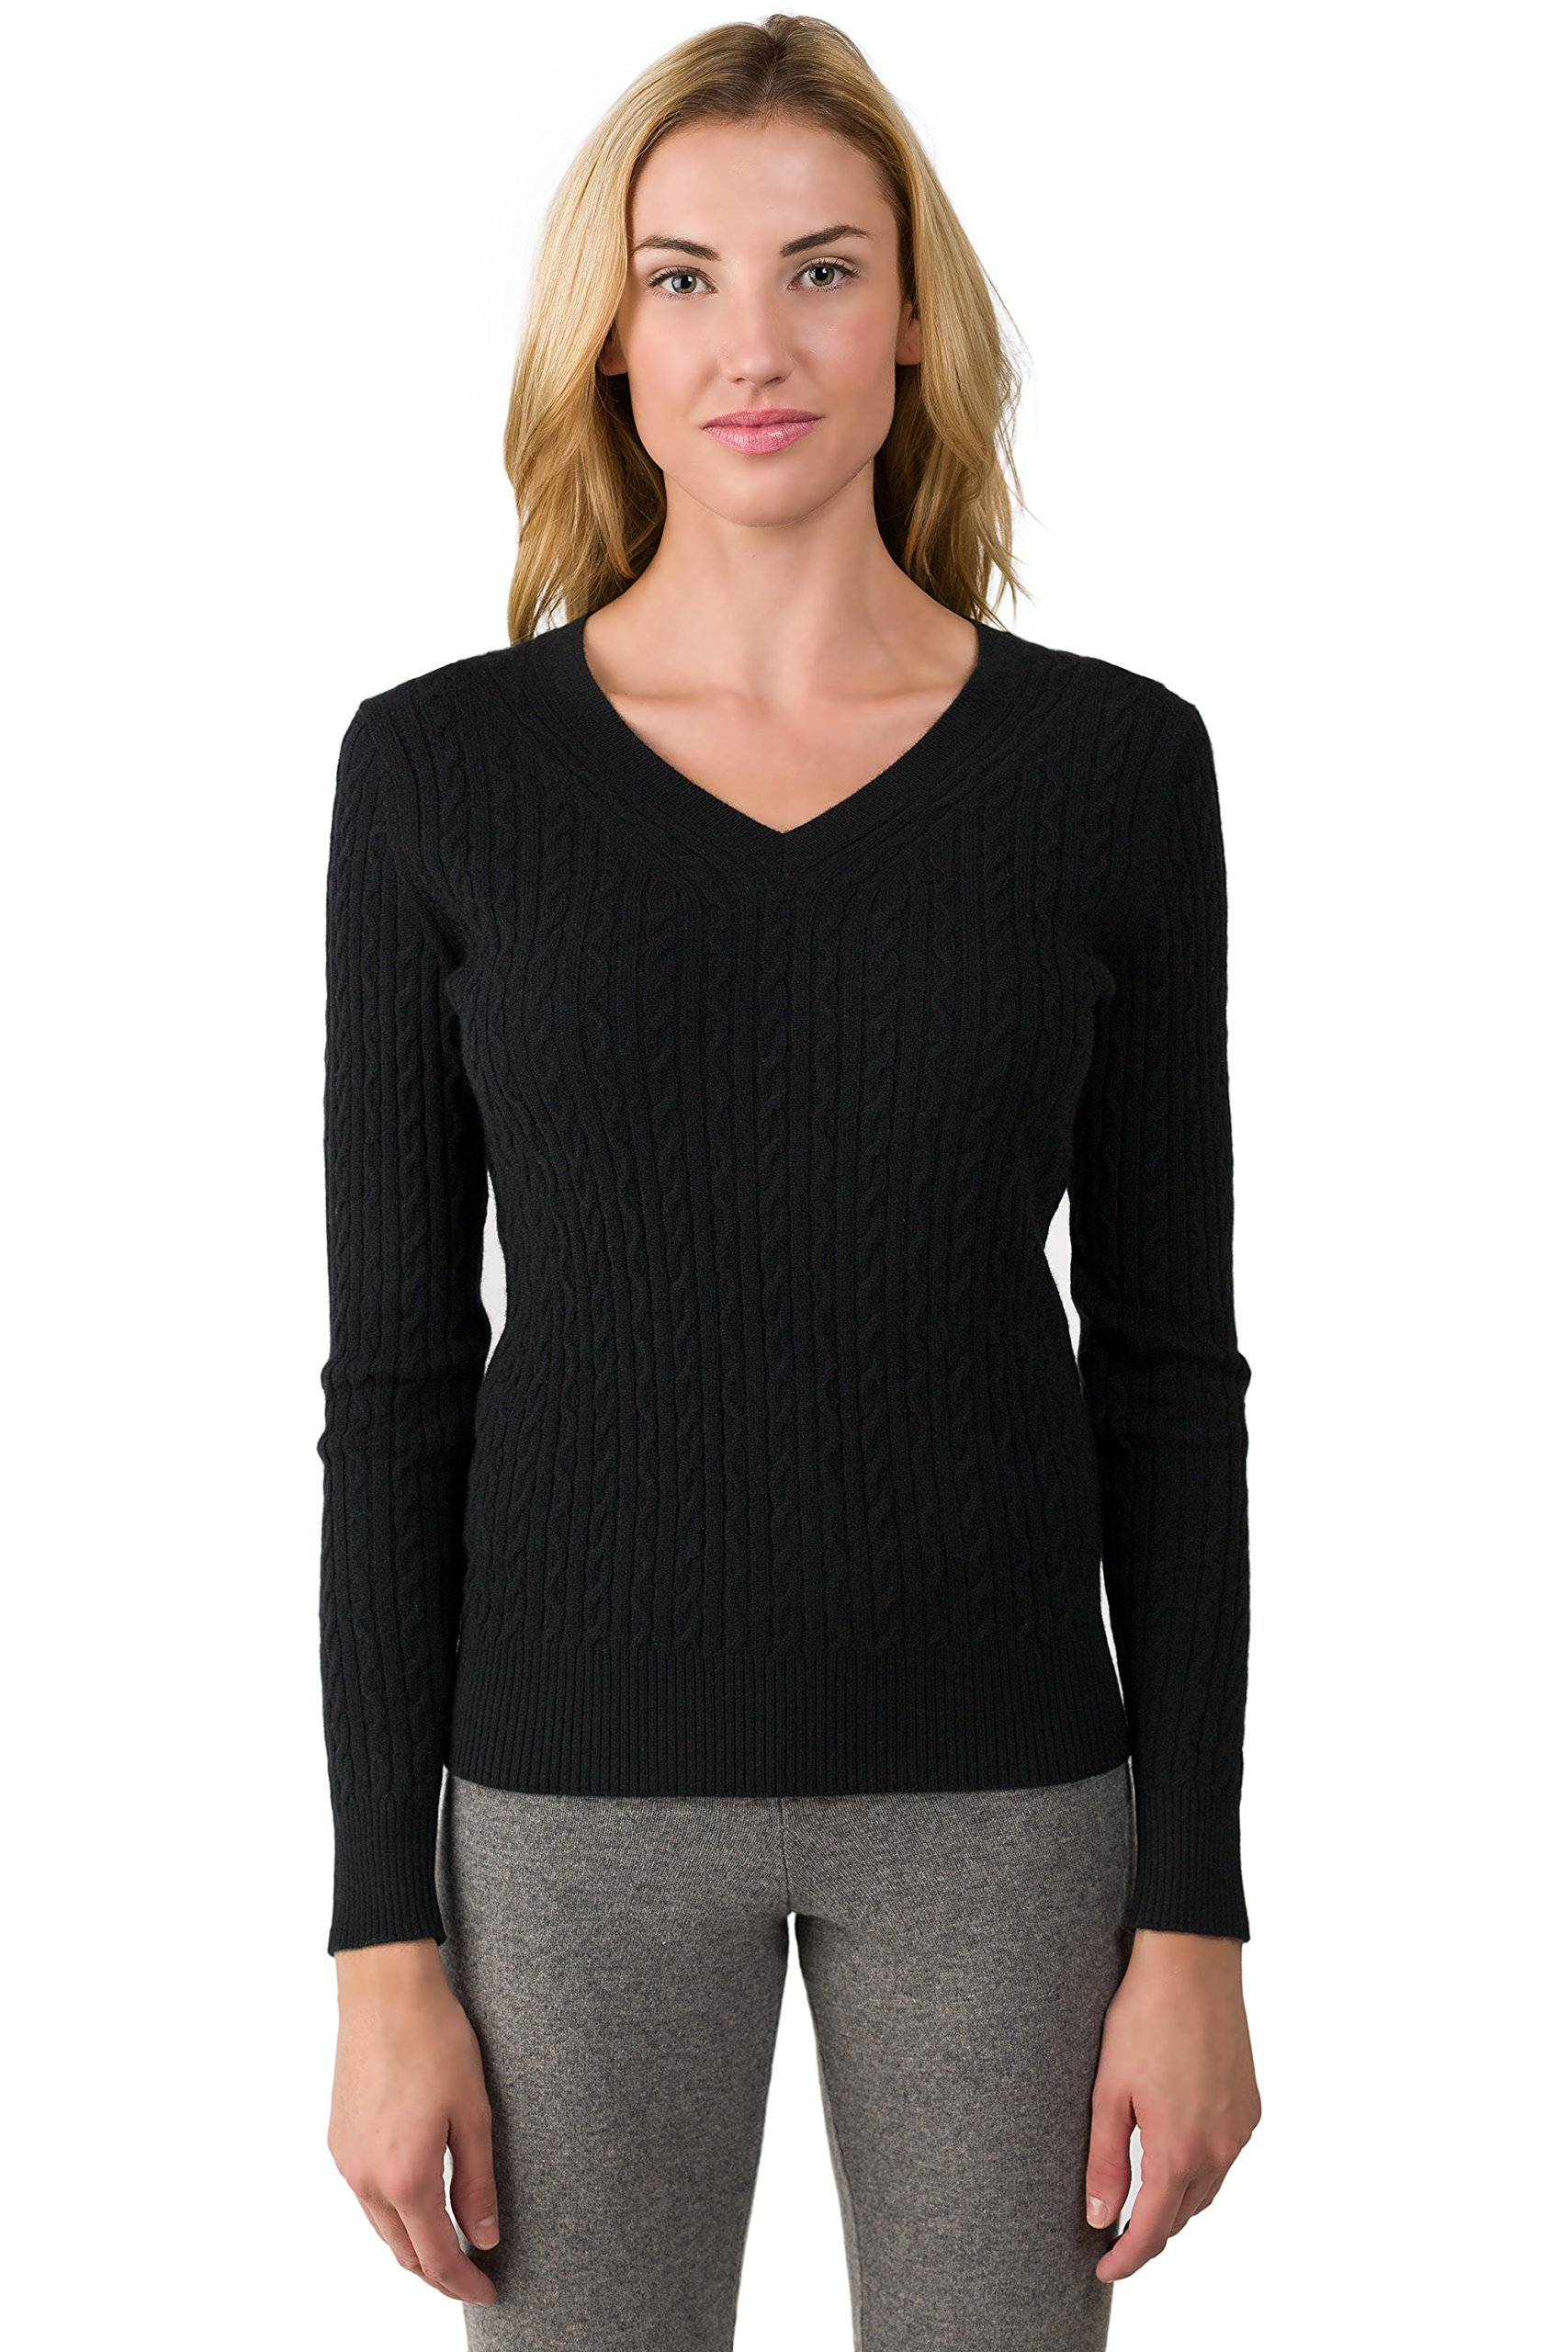 JENNIE LIU J Cashmere Women's 100% Cashmere Long Sleeve Pullover Cable-Knit V-Neck Sweater Black Large